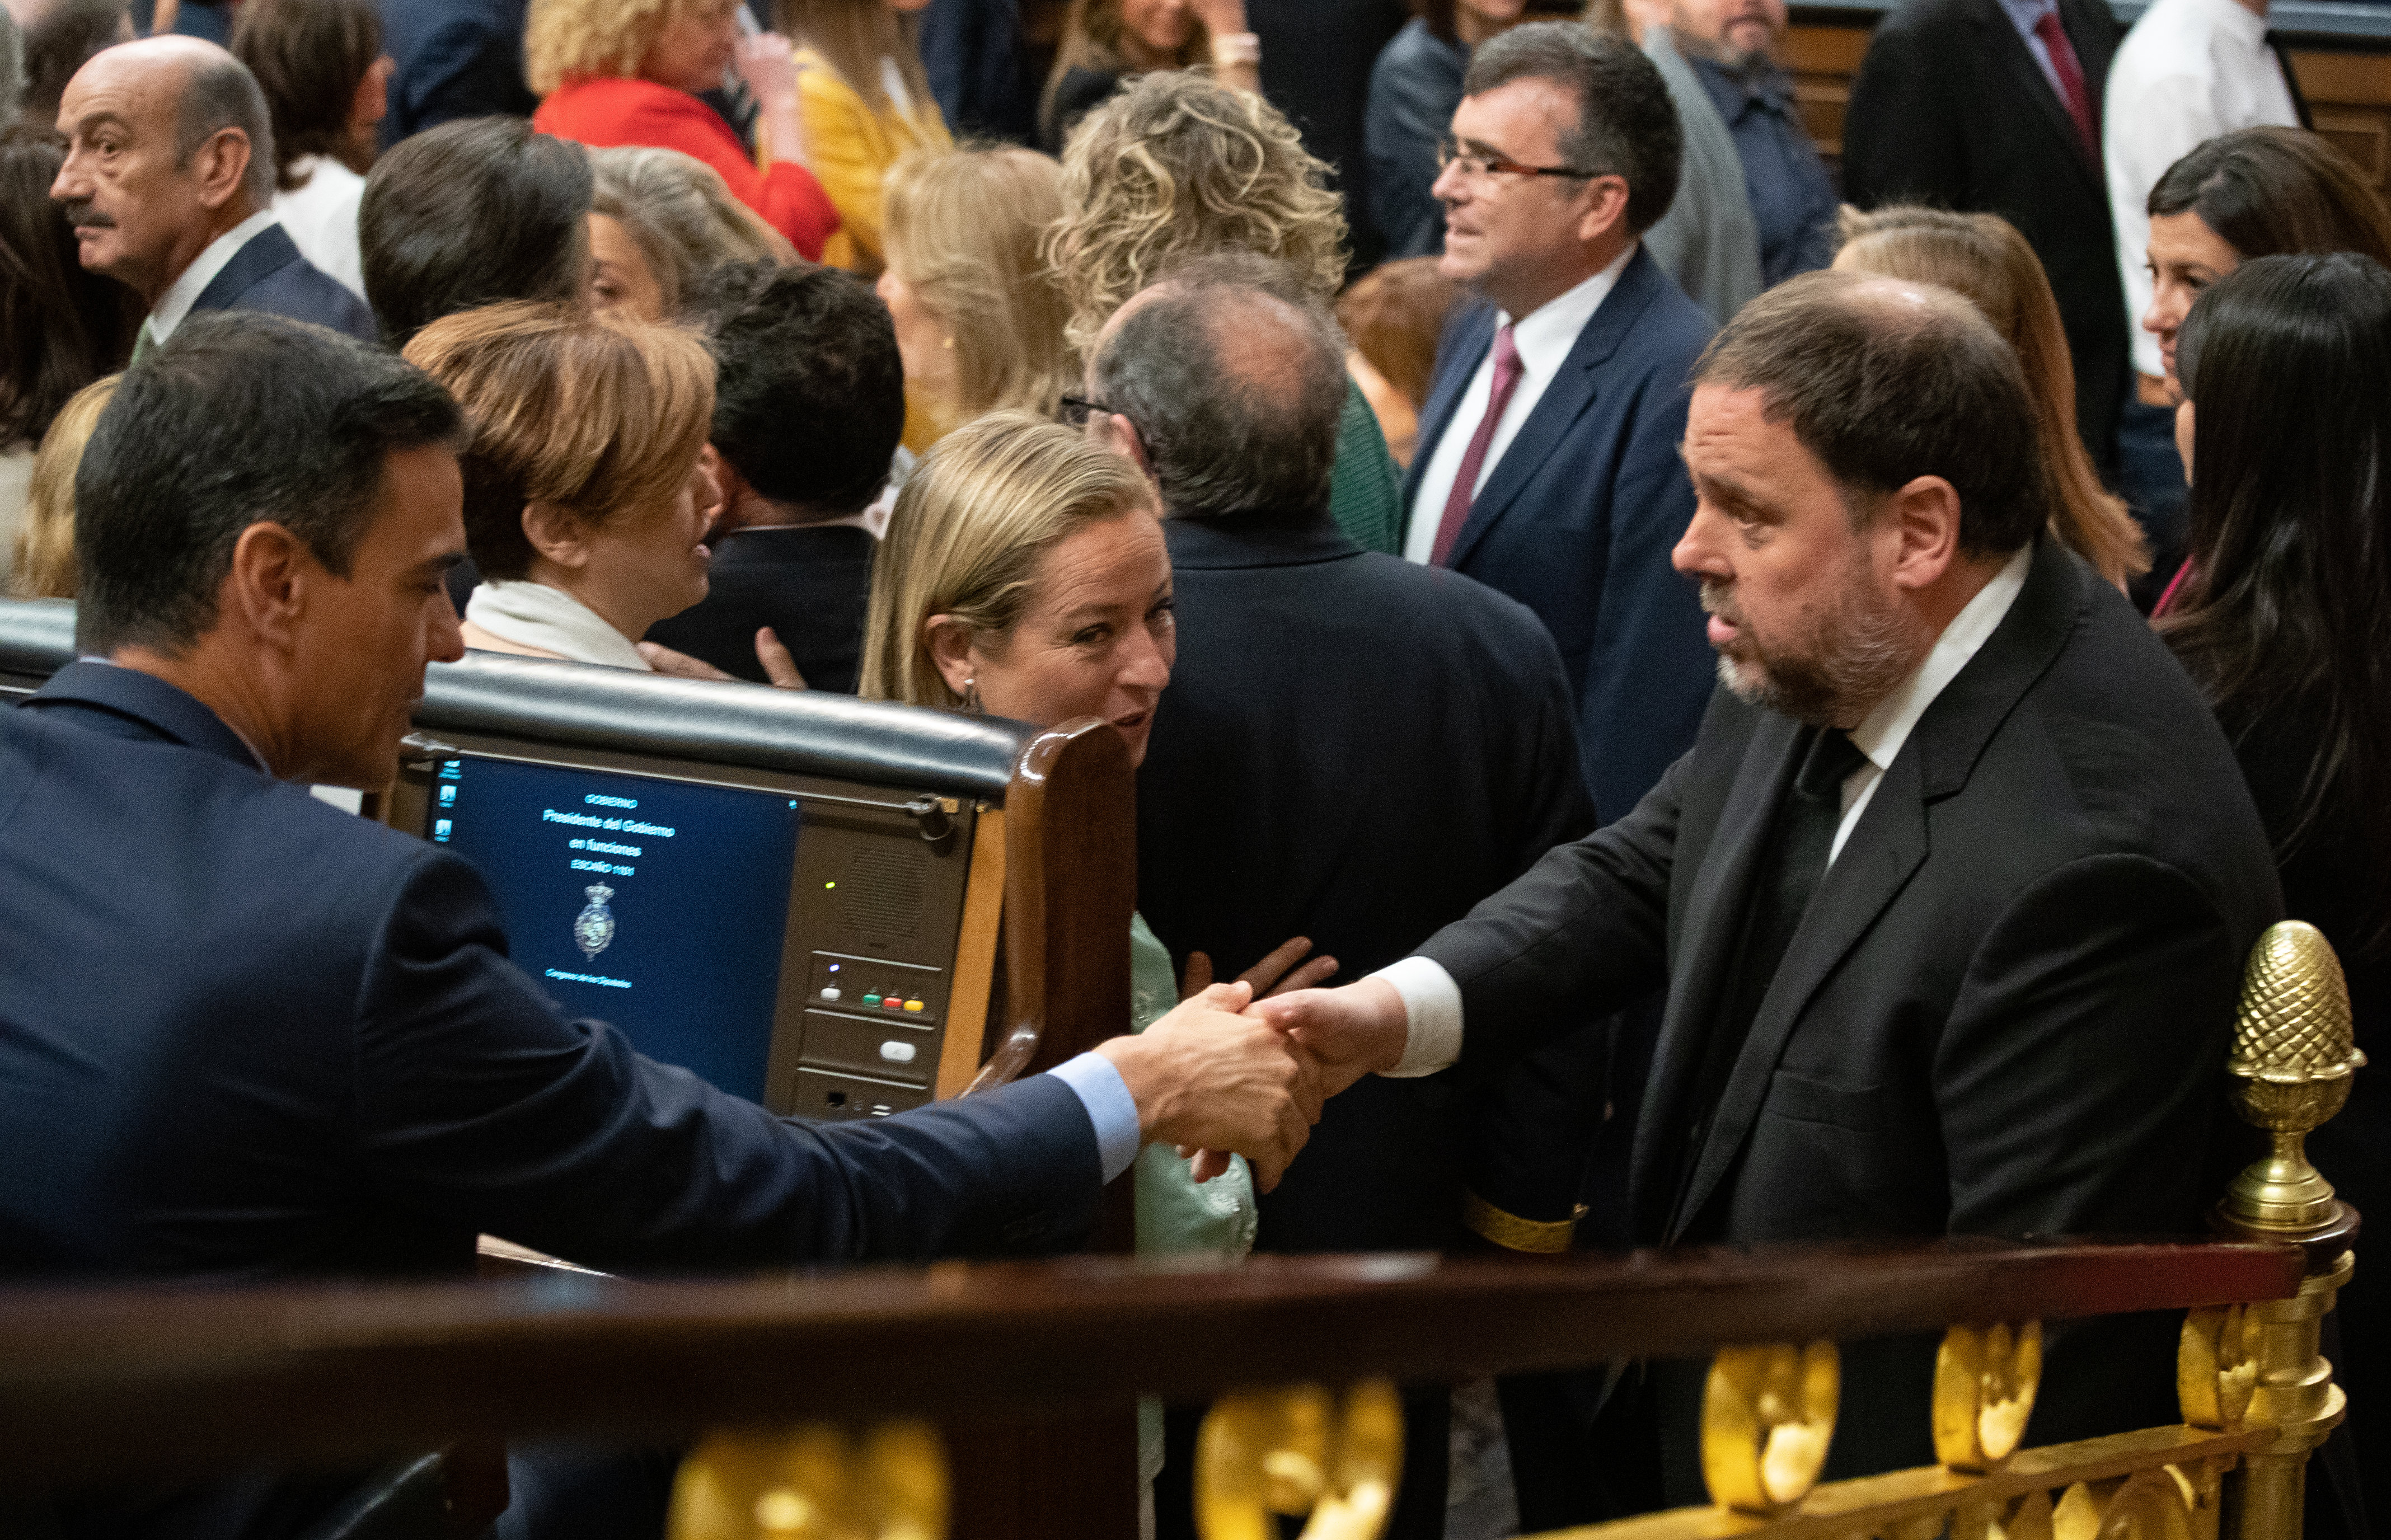 Jailed Catalan leader Oriol Junqueras and Spain's acting president Pedro Sánchez shake hands in the Spanish congress (by ACN)